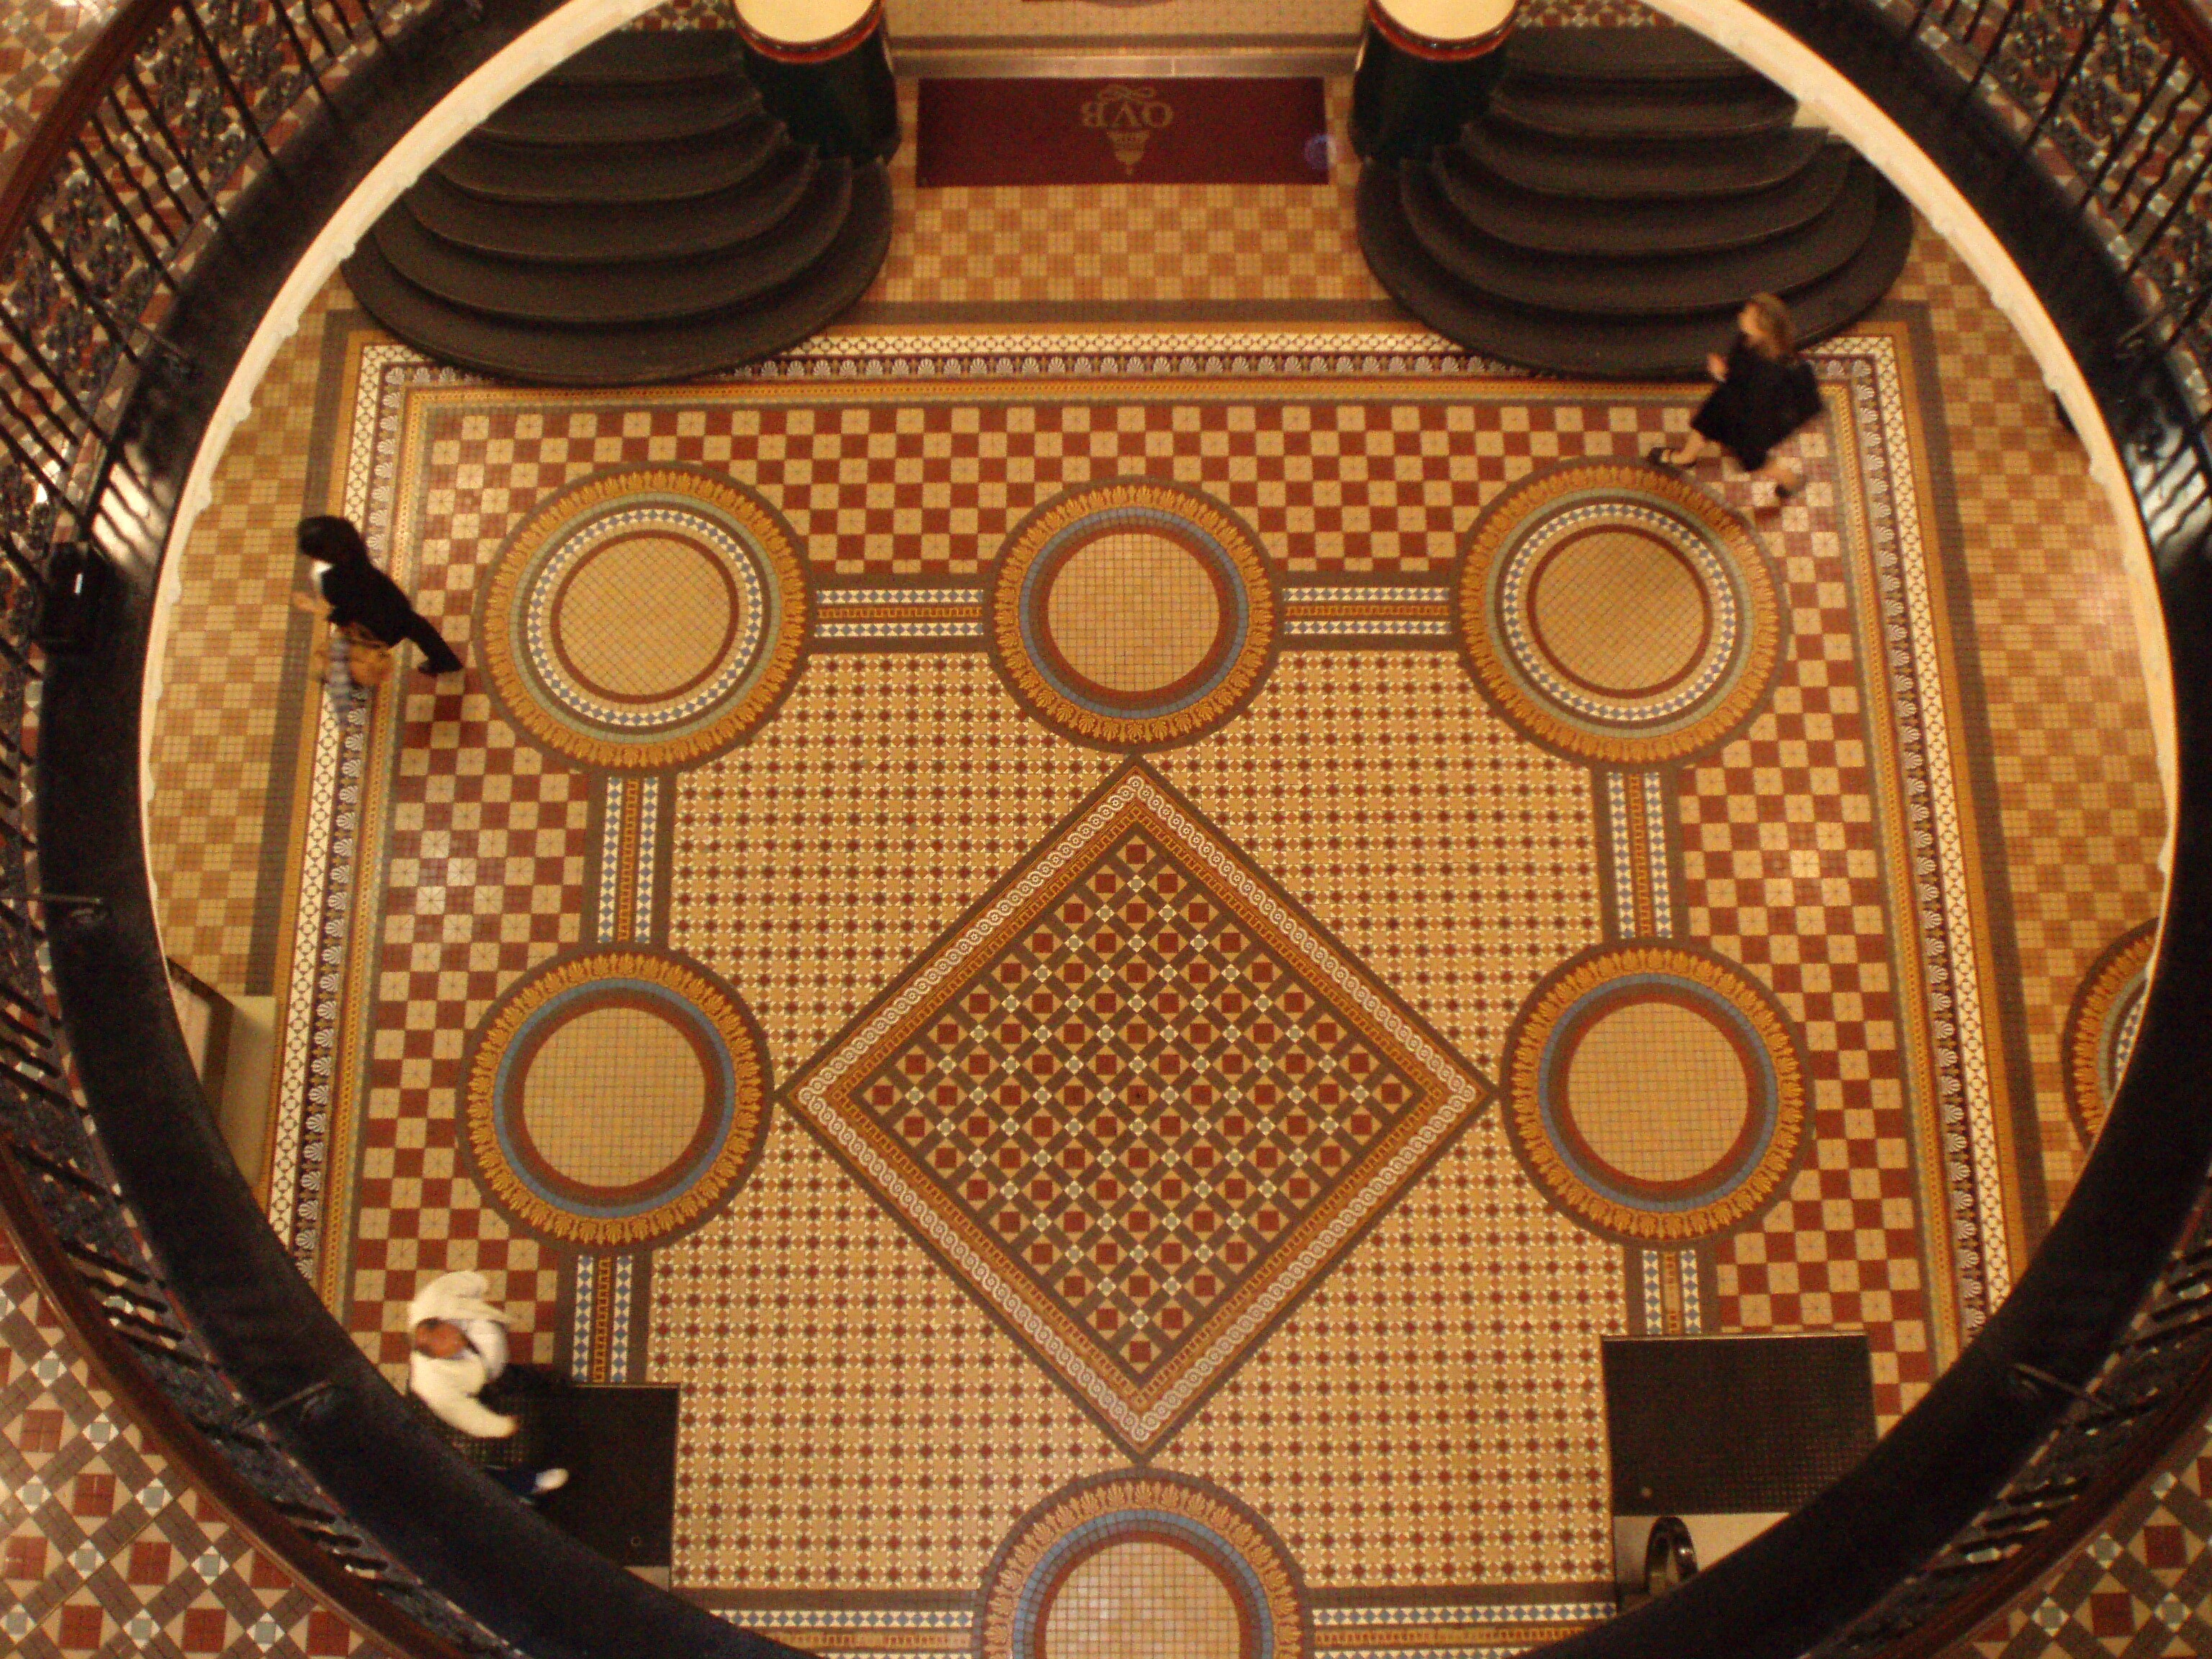 The elaborate floor pattern of the sydney queen victoria building